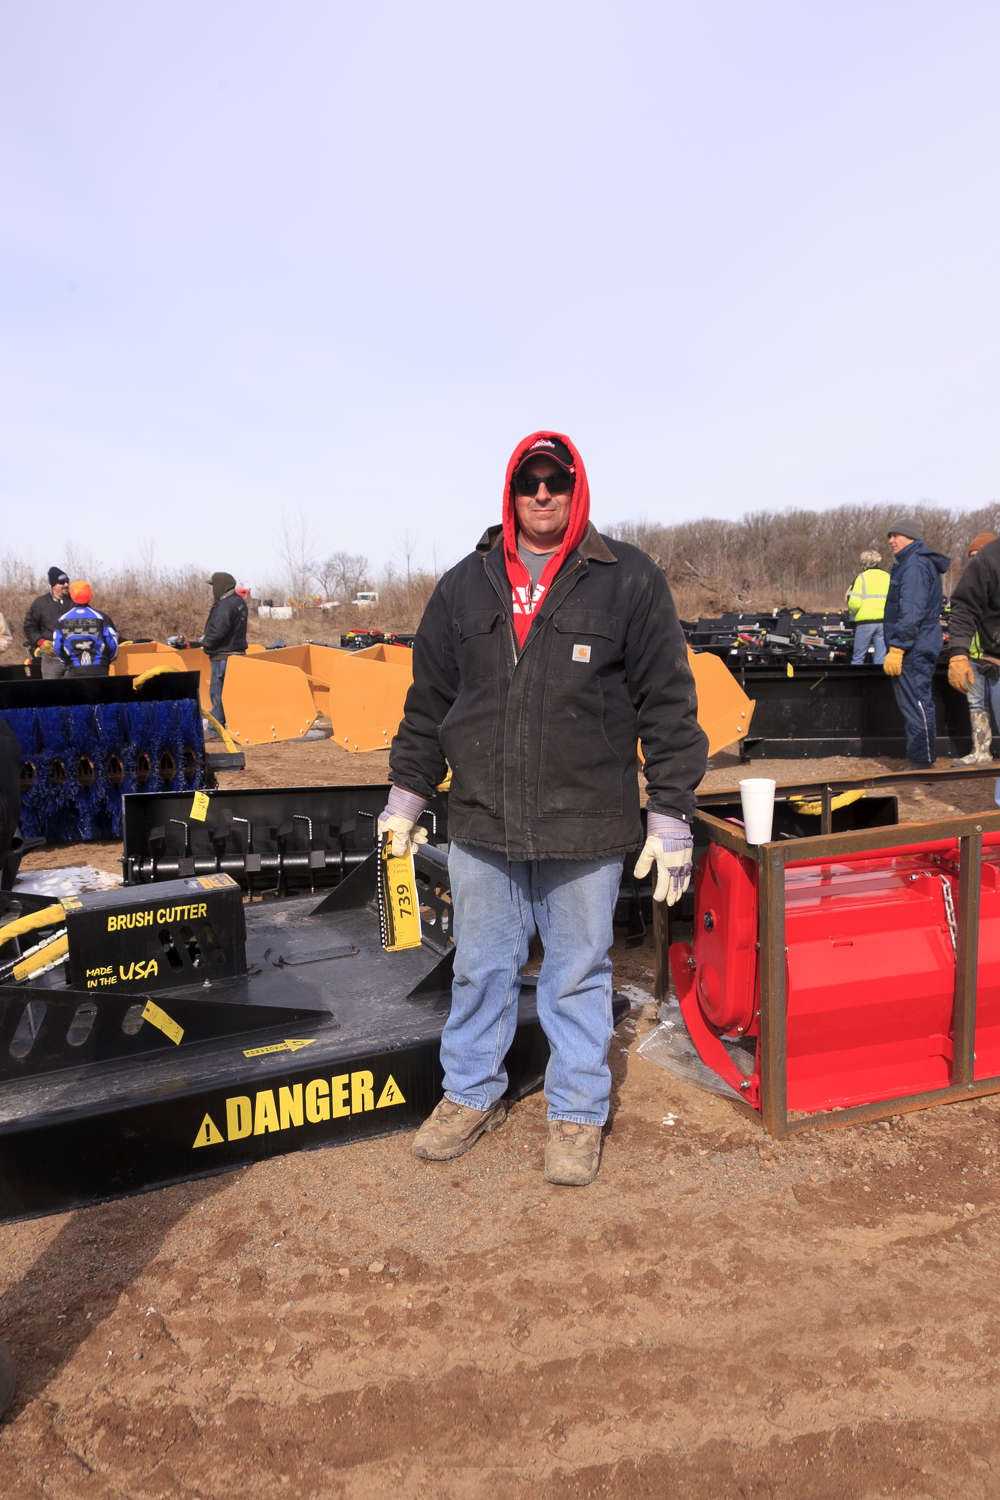 Peter Erickson of Milaca, Minn., shops from Ring 2's wide variety of attachments and tools.